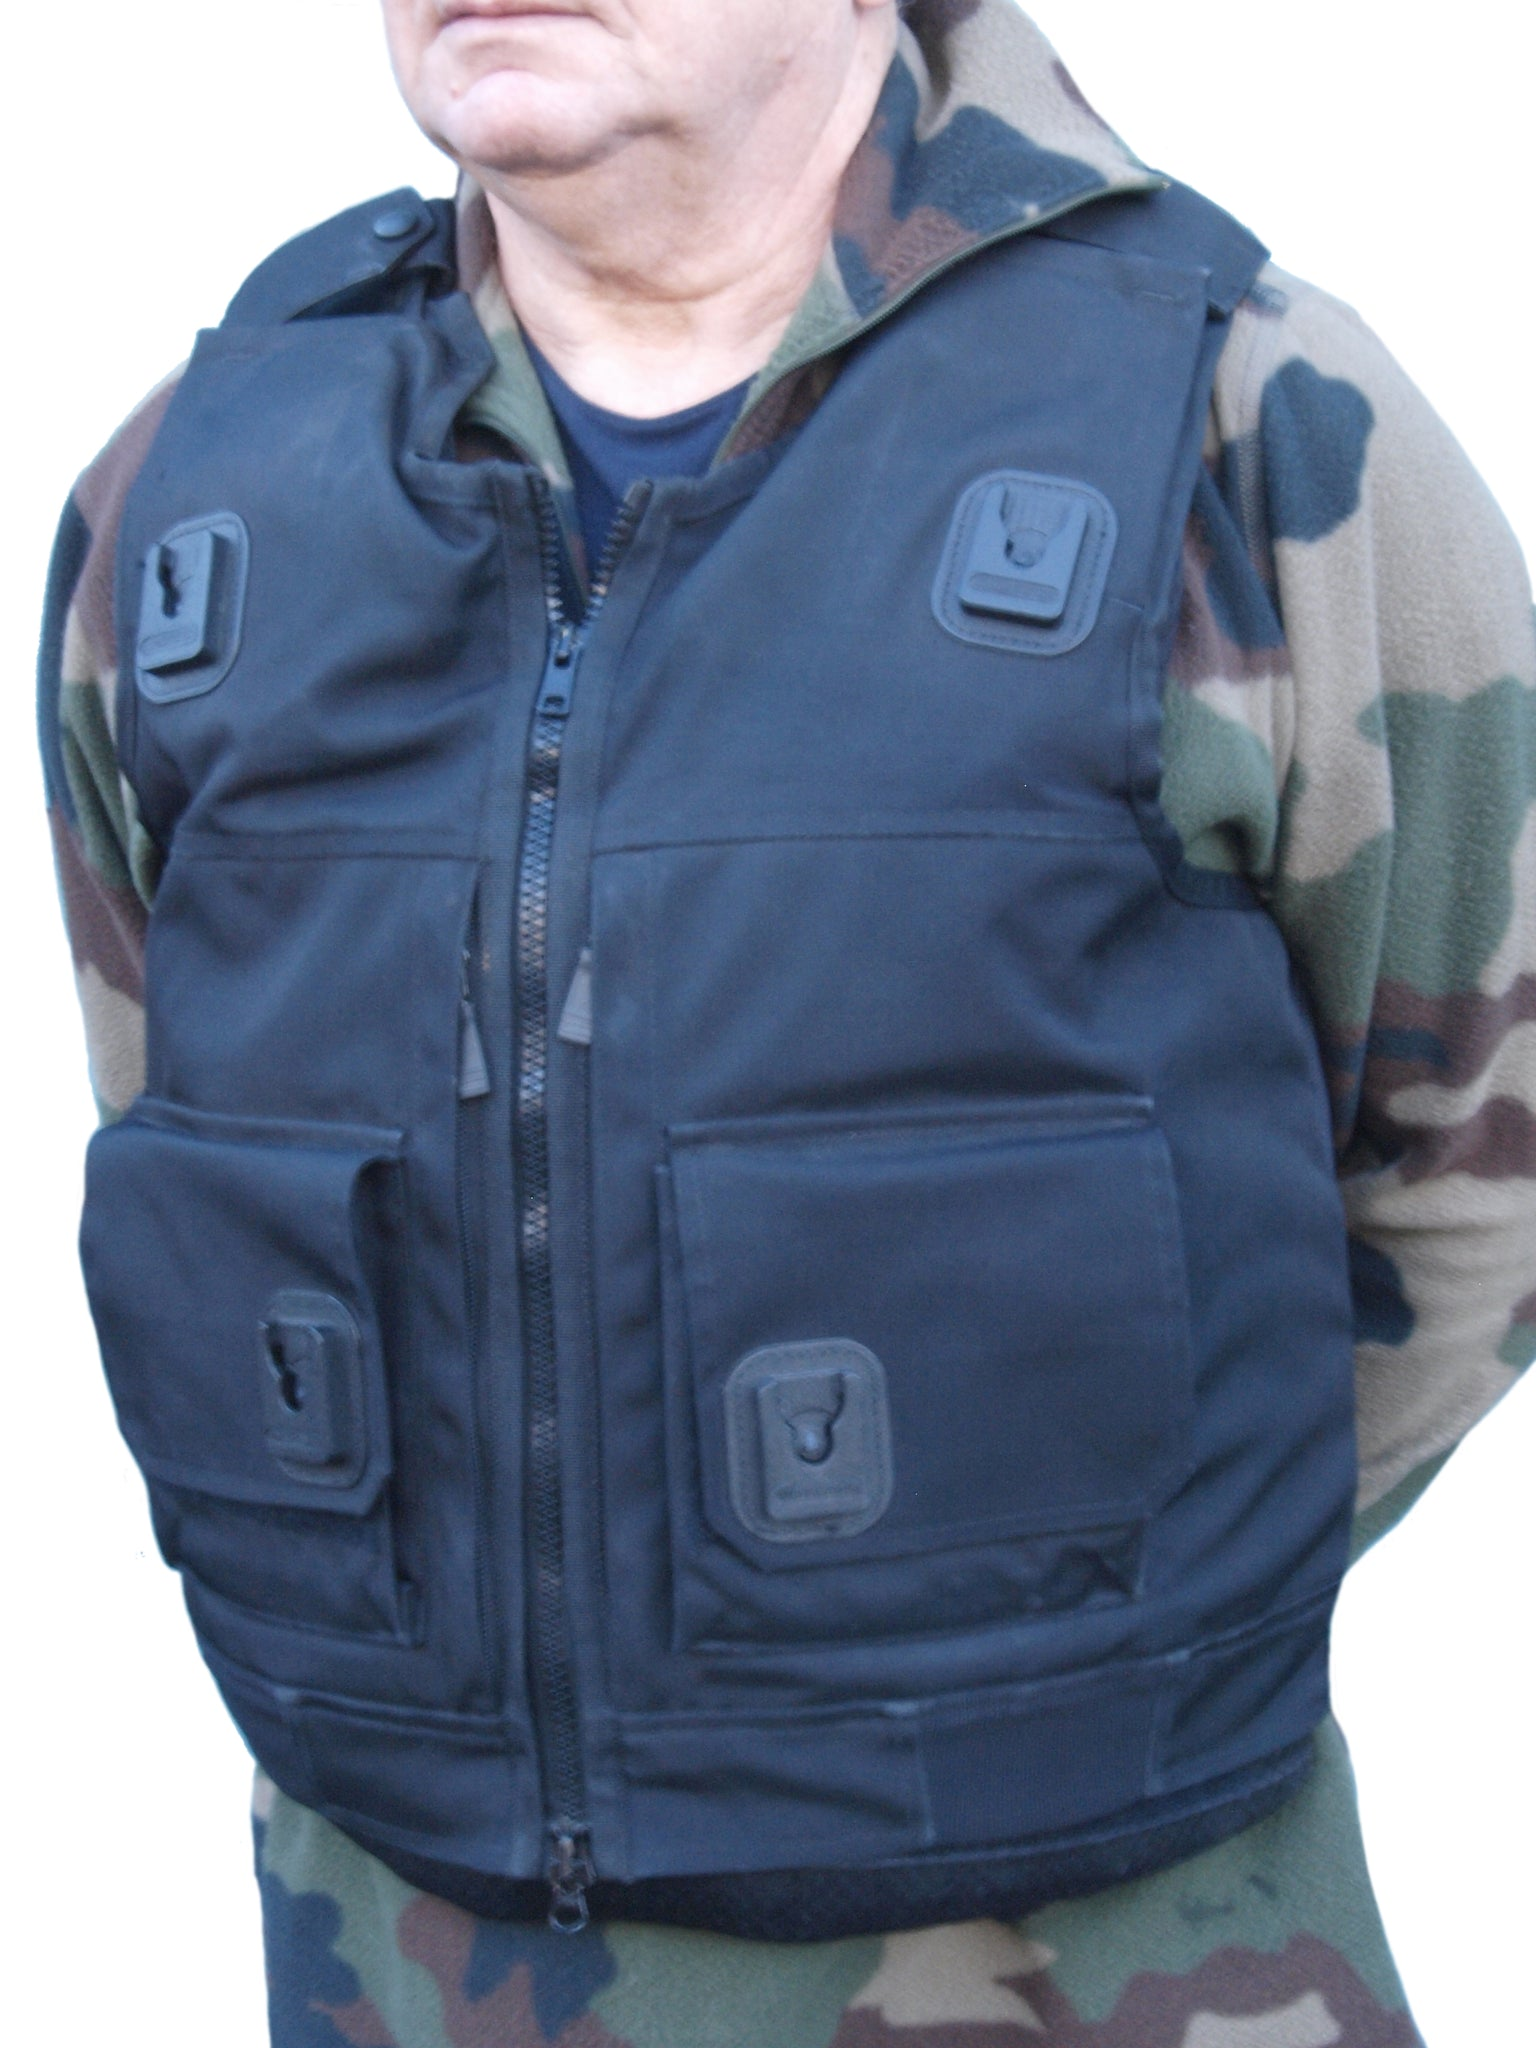 Uk Police Stab Bullet Proof Security Vest Body Armour